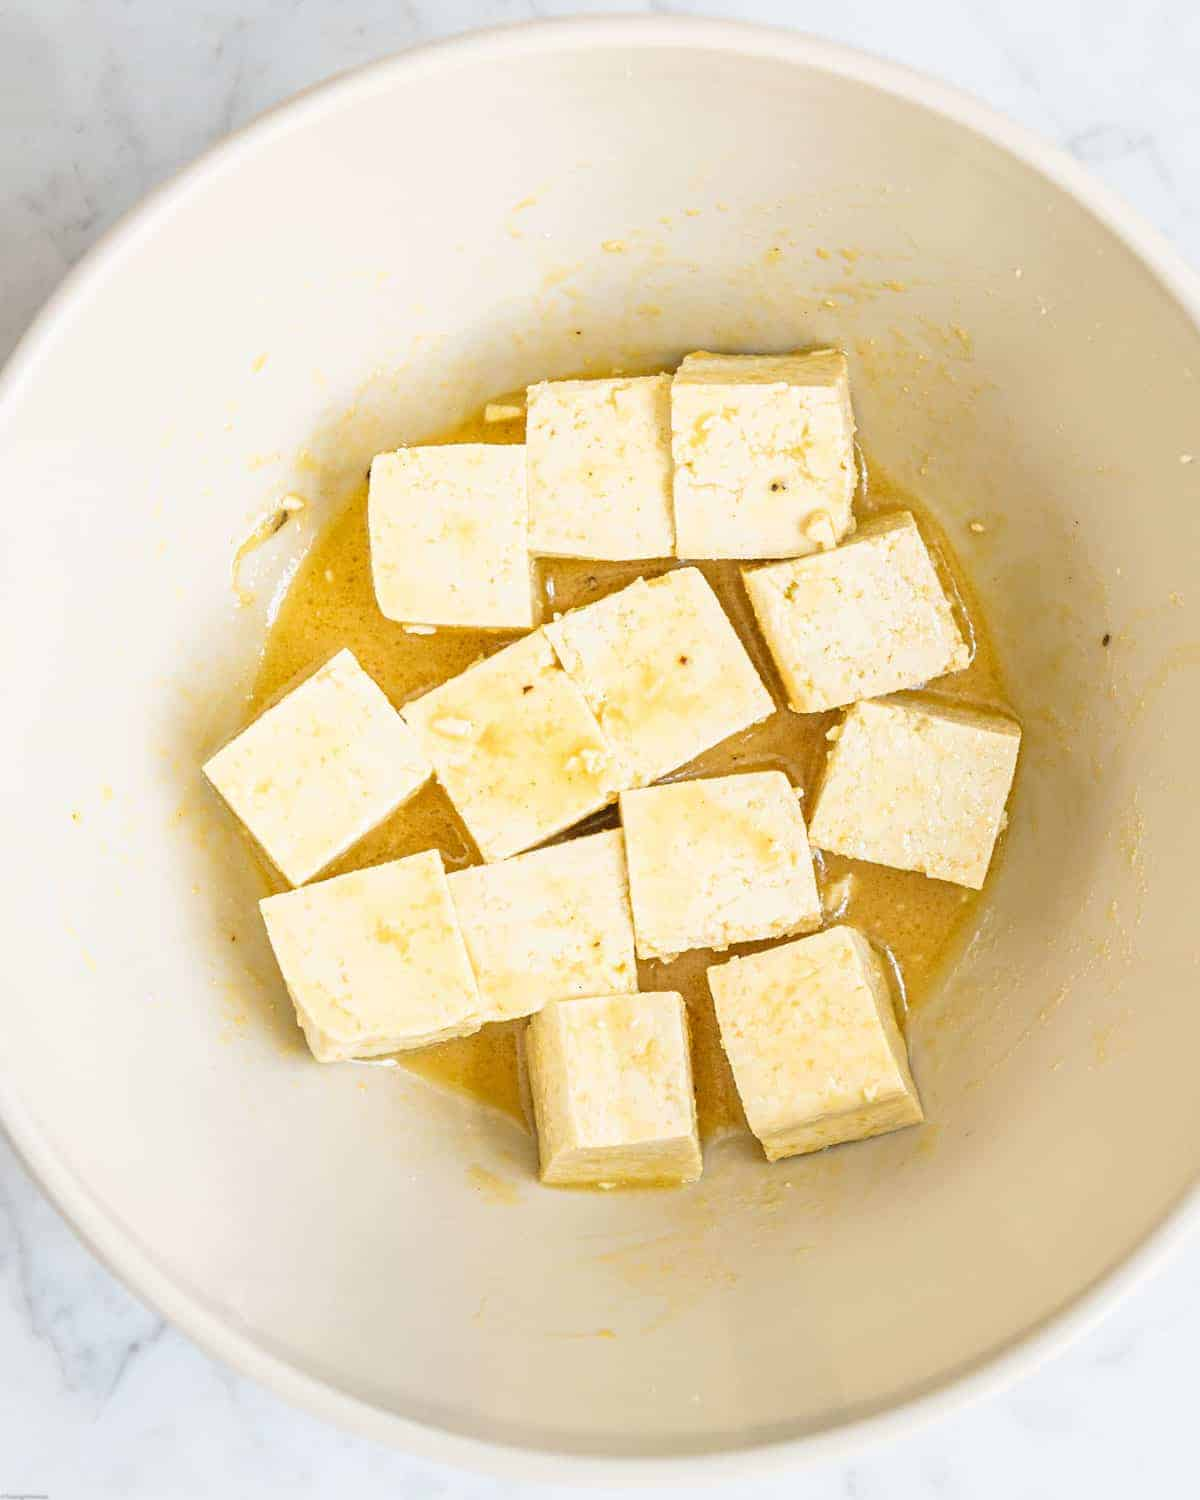 Tofu cubes in a bowl with the dressing.